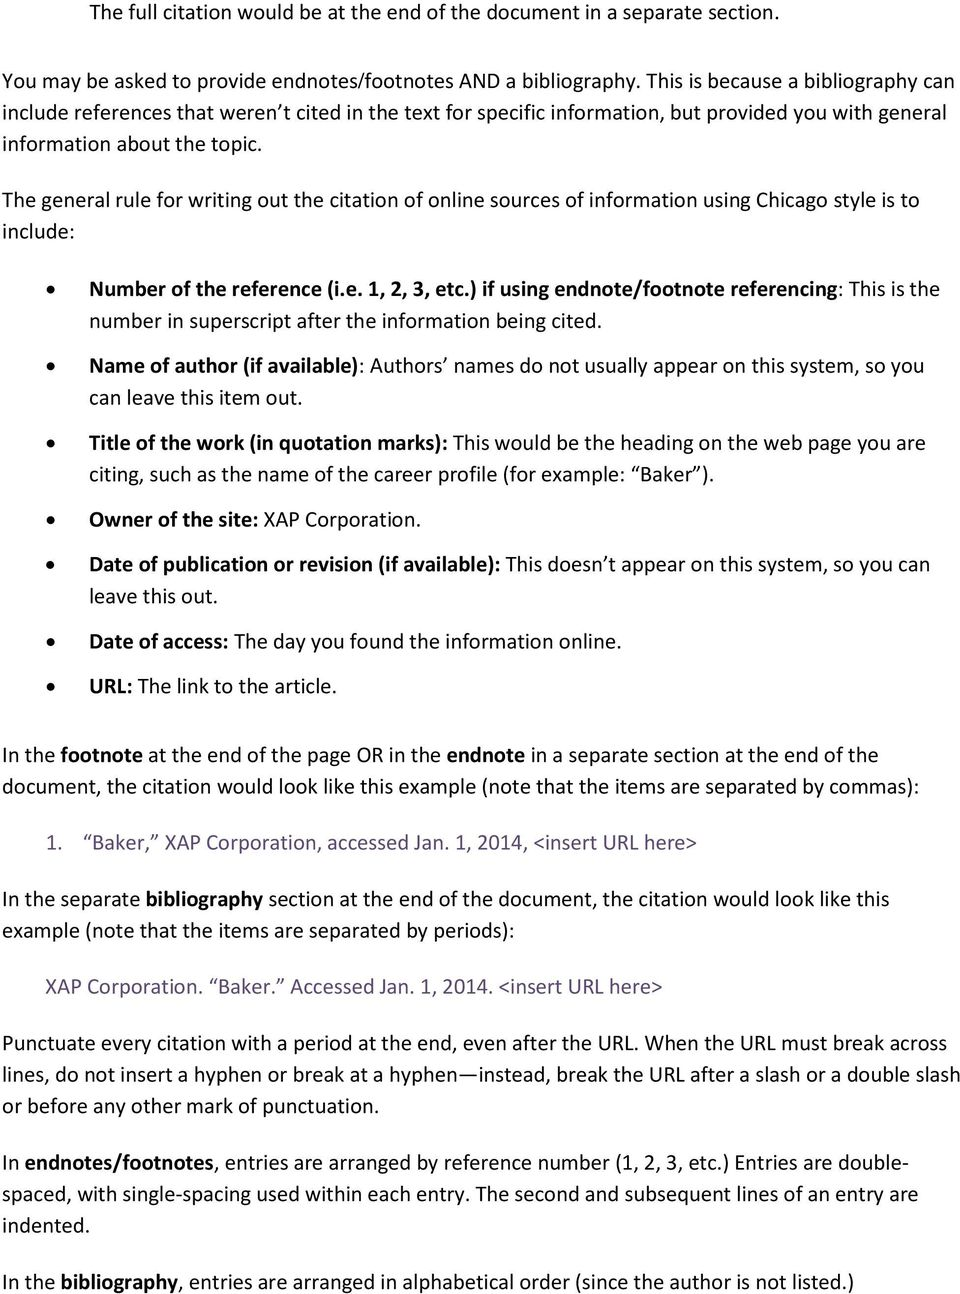 The general rule for writing out the citation of online sources of information using Chicago style is to include: Number of the reference (i.e. 1, 2, 3, etc.